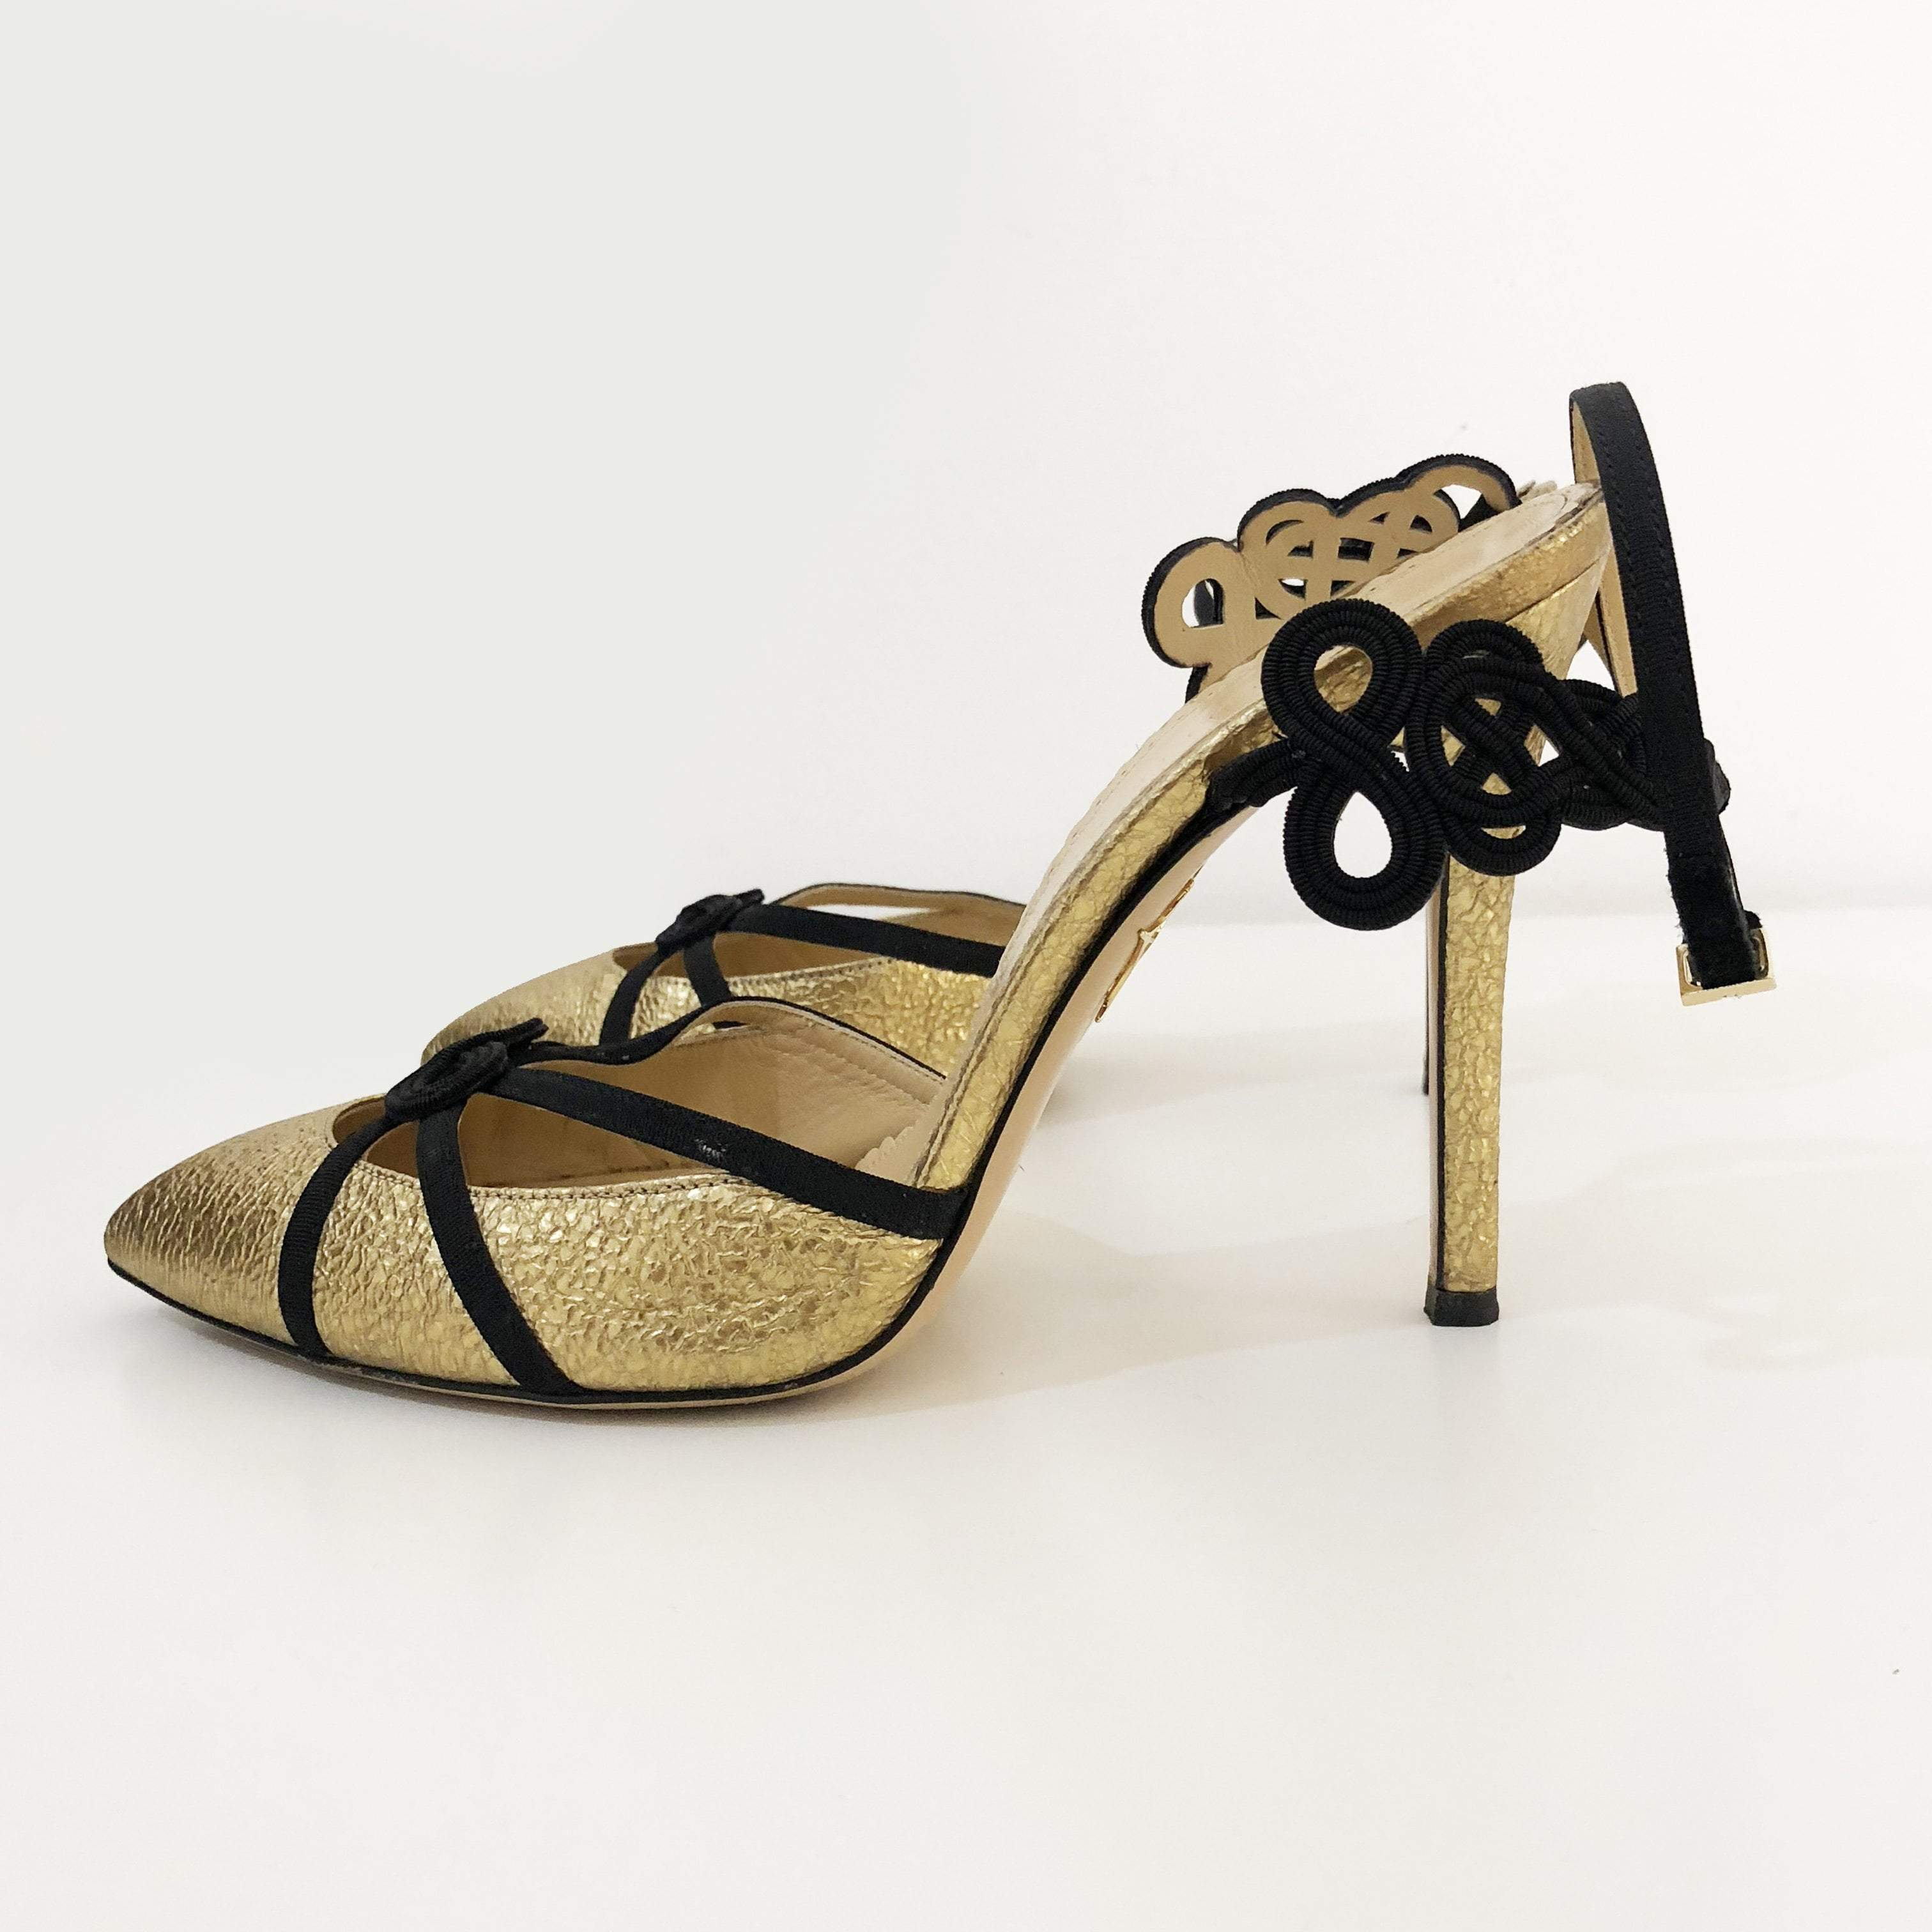 Charlotte Olympia 'Minx' Chinese Knot Textured Metallic Leather Pumps, Gold